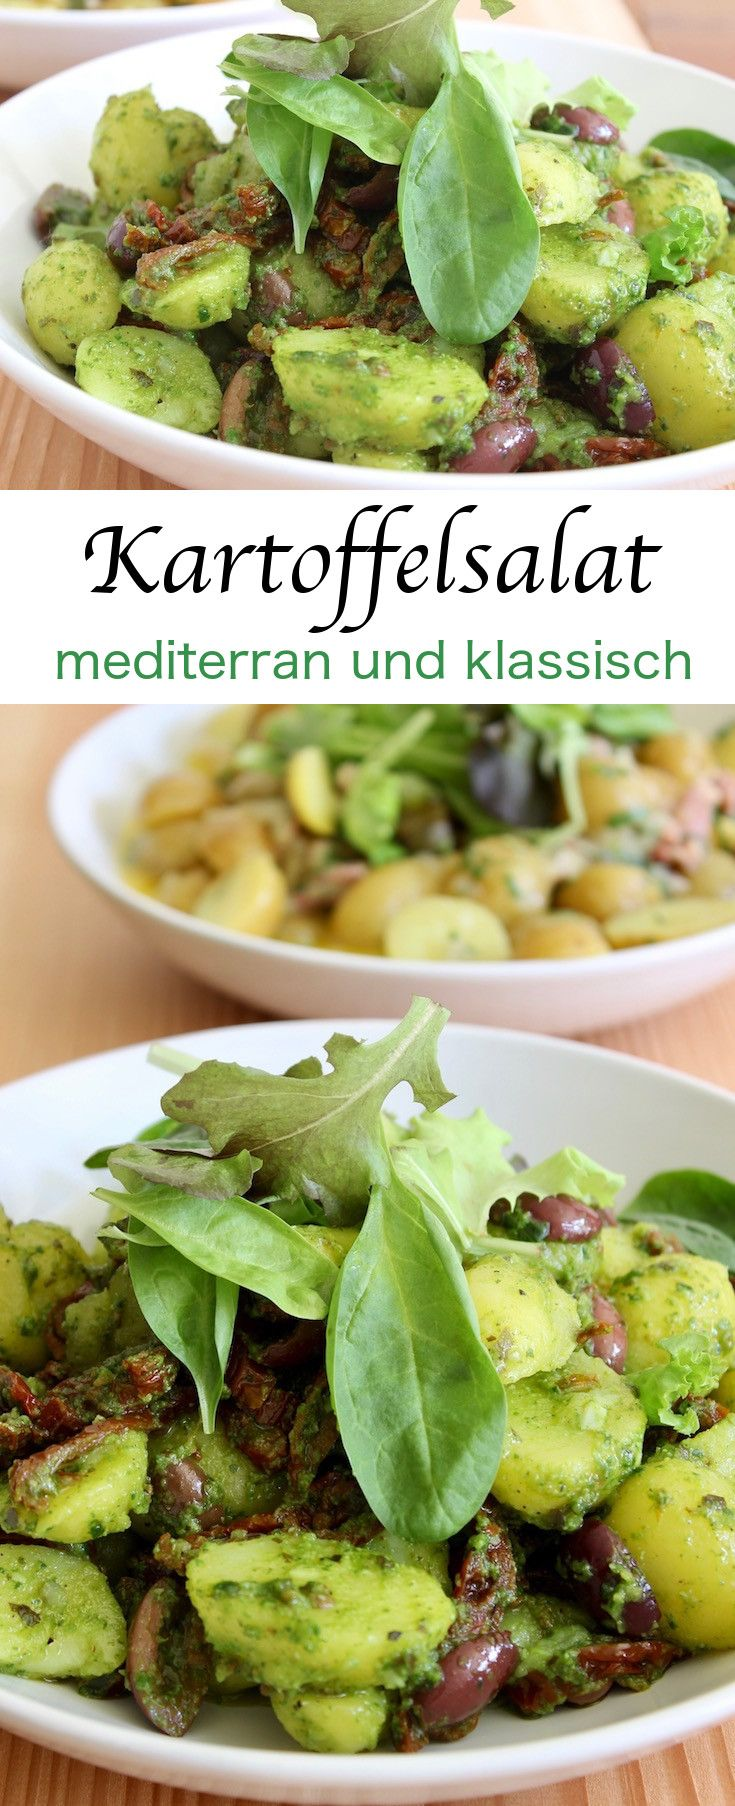 25 best ideas about kartoffelsalat rezept on pinterest kartoffelsalat essen trinken and. Black Bedroom Furniture Sets. Home Design Ideas